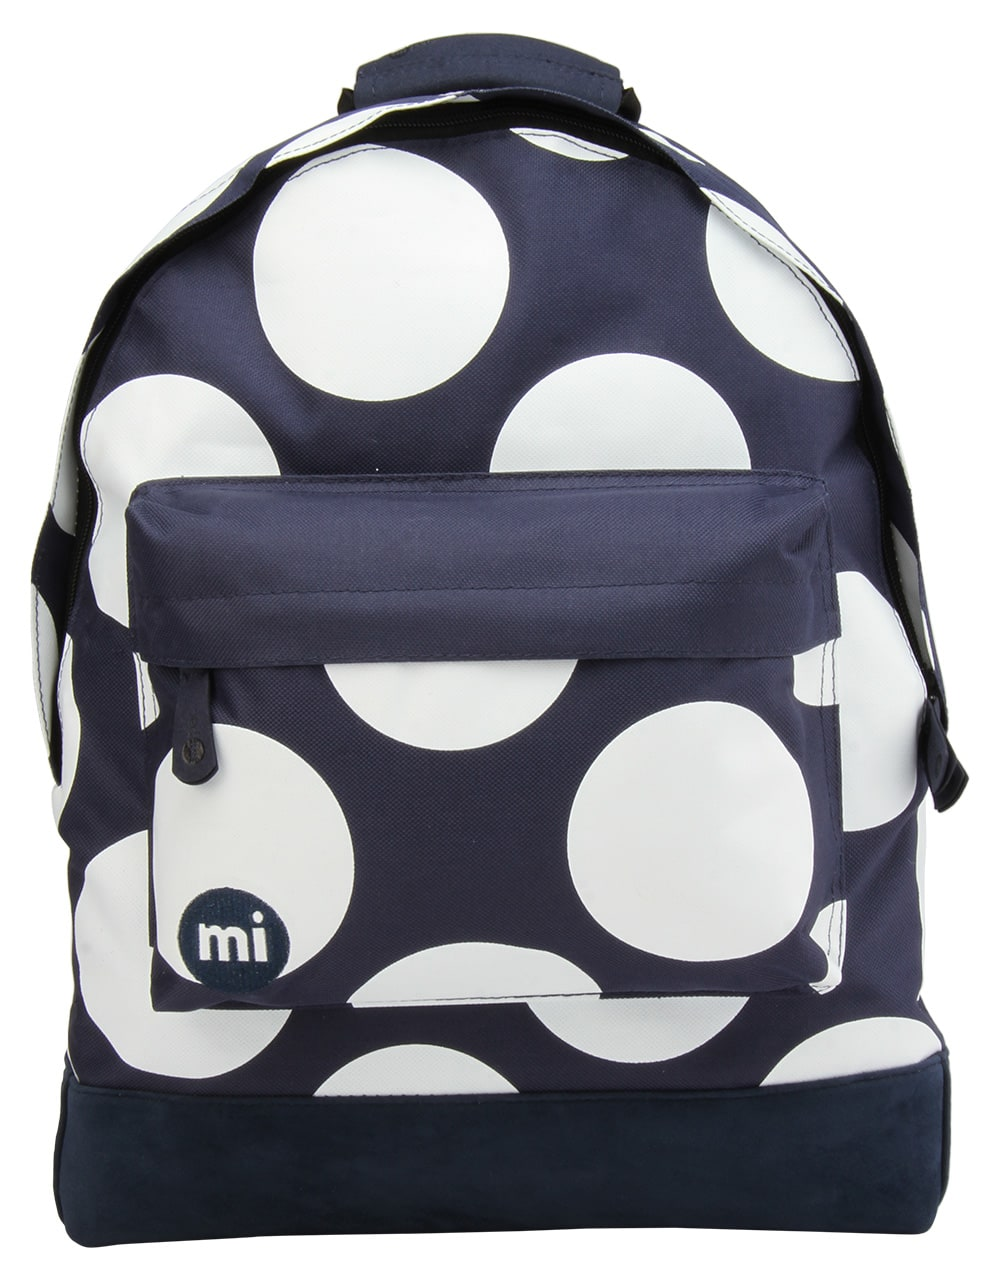 MiPac Polka XL Backpack  NavyWhite